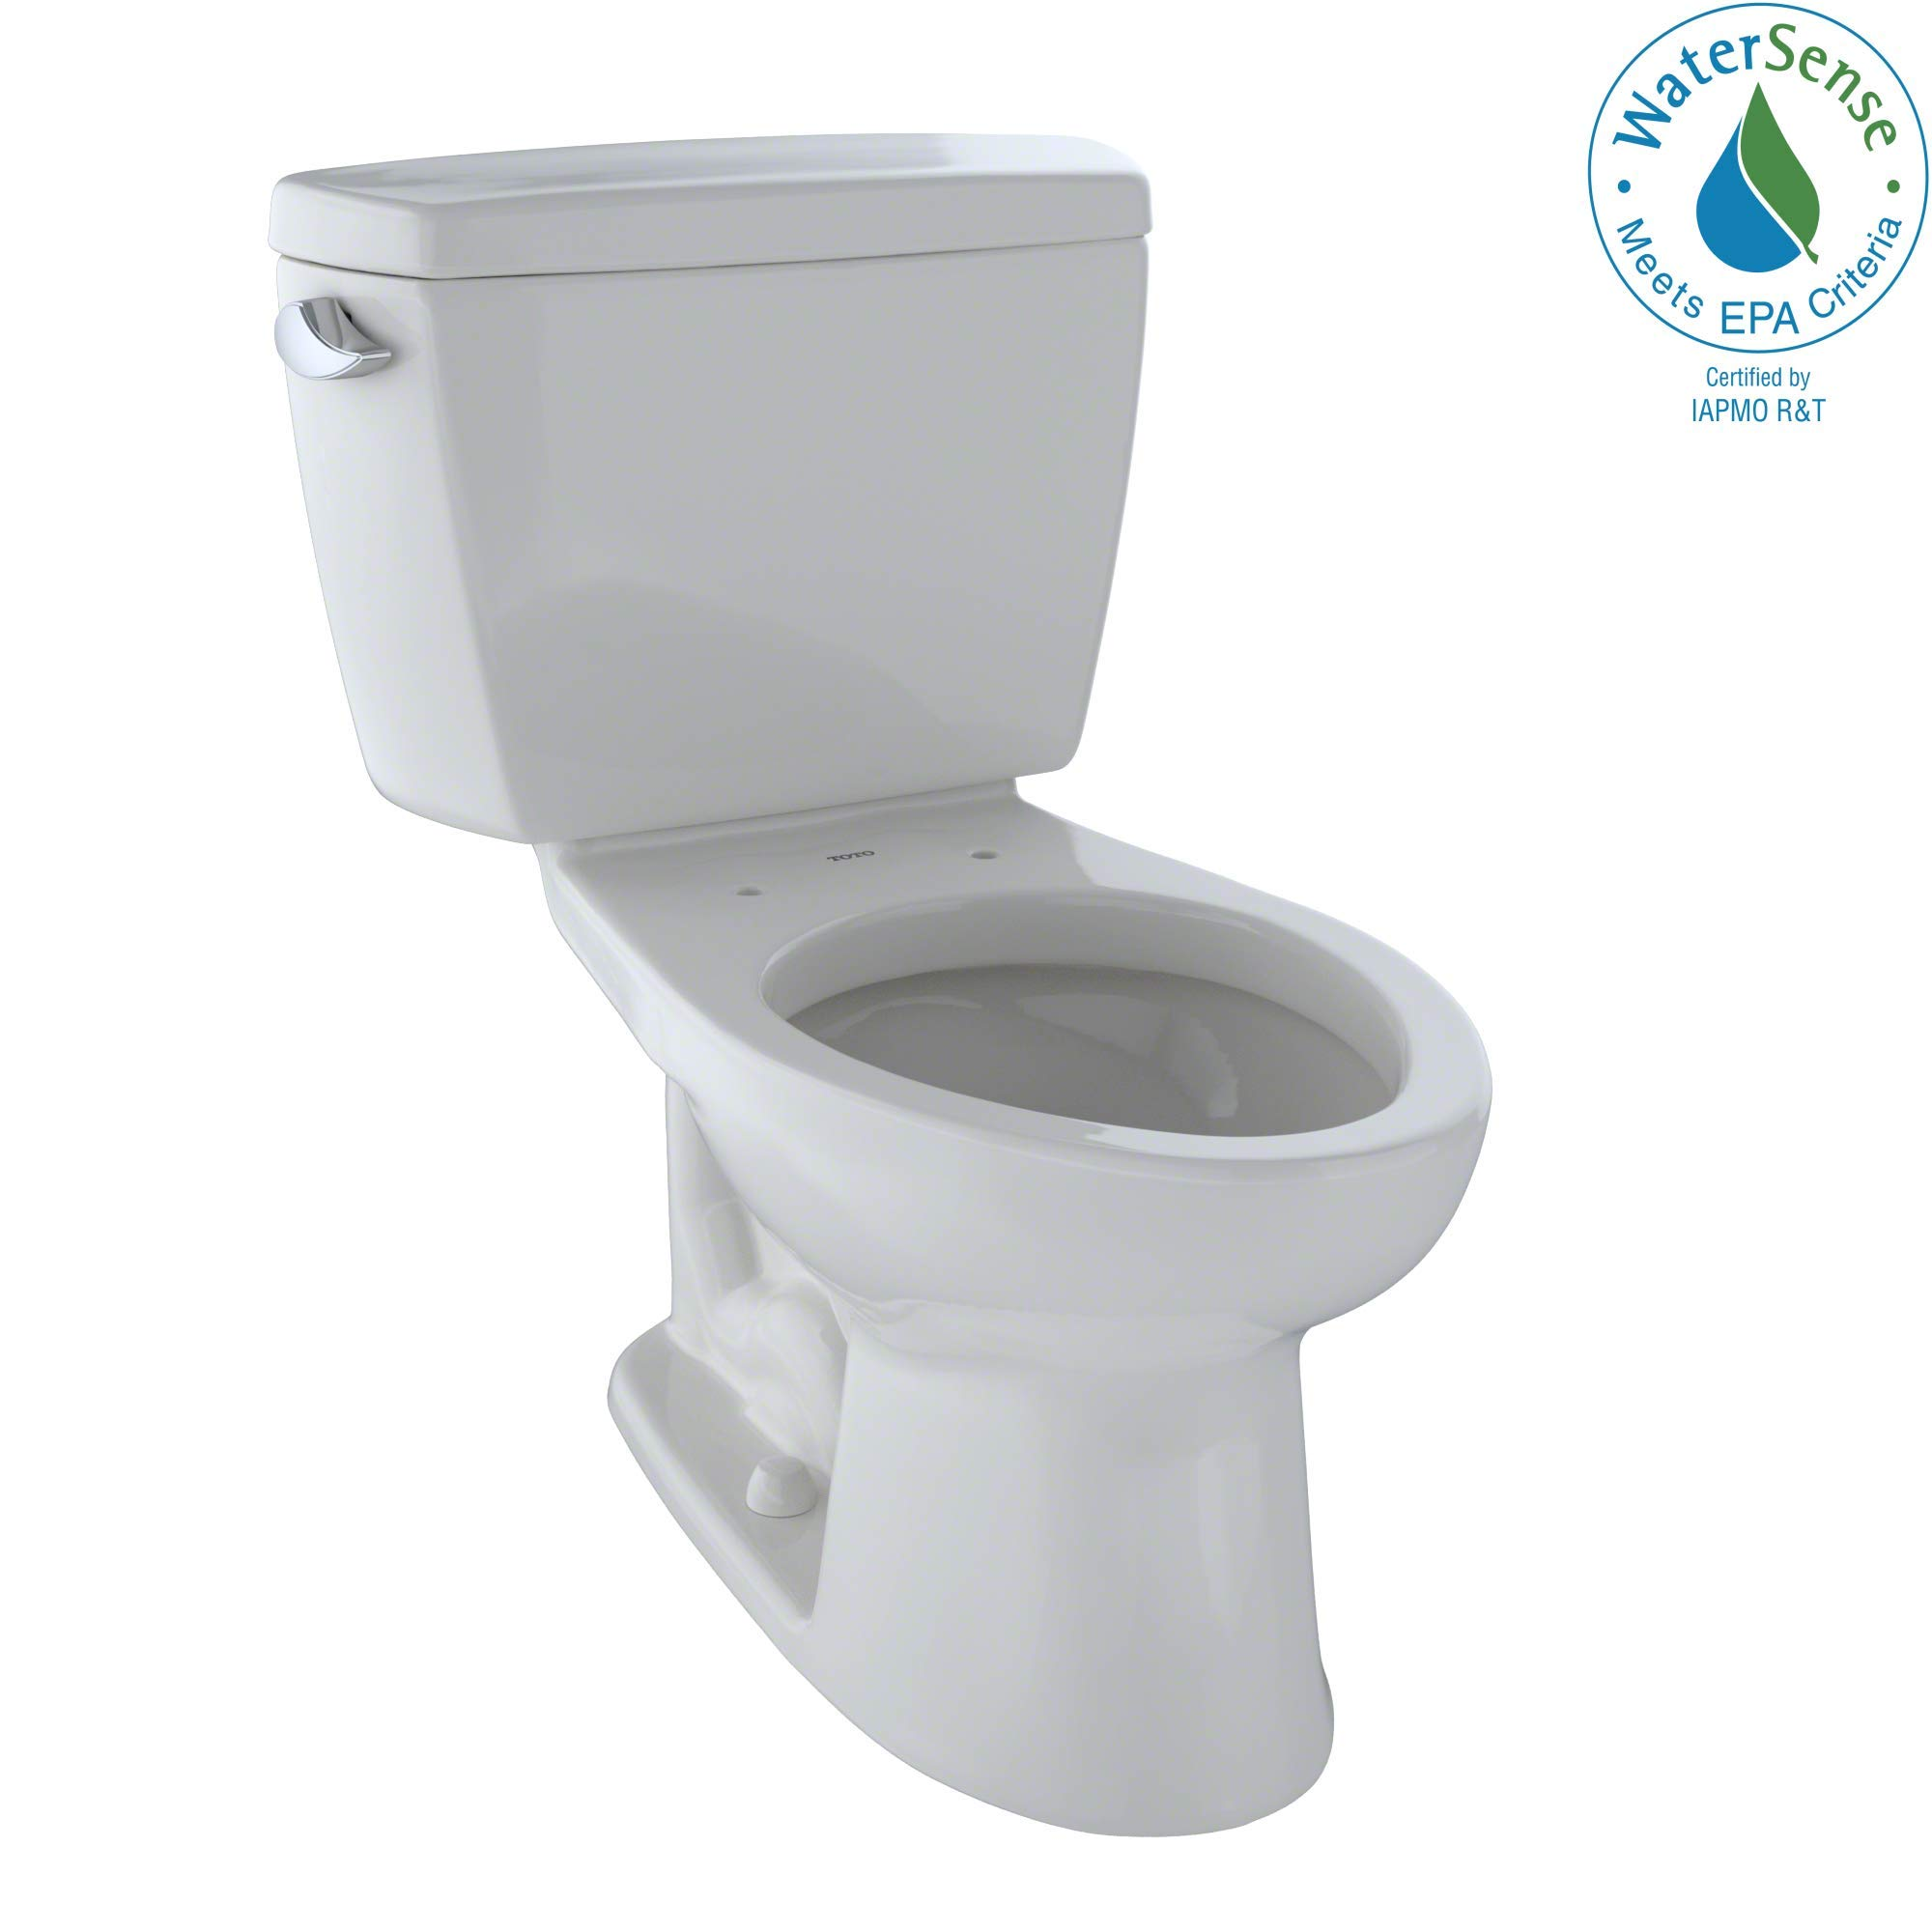 TOTO CST744E#11 Eco Drake Two-Piece Elongated 1.28 GPF Toilet, Colonial White by TOTO